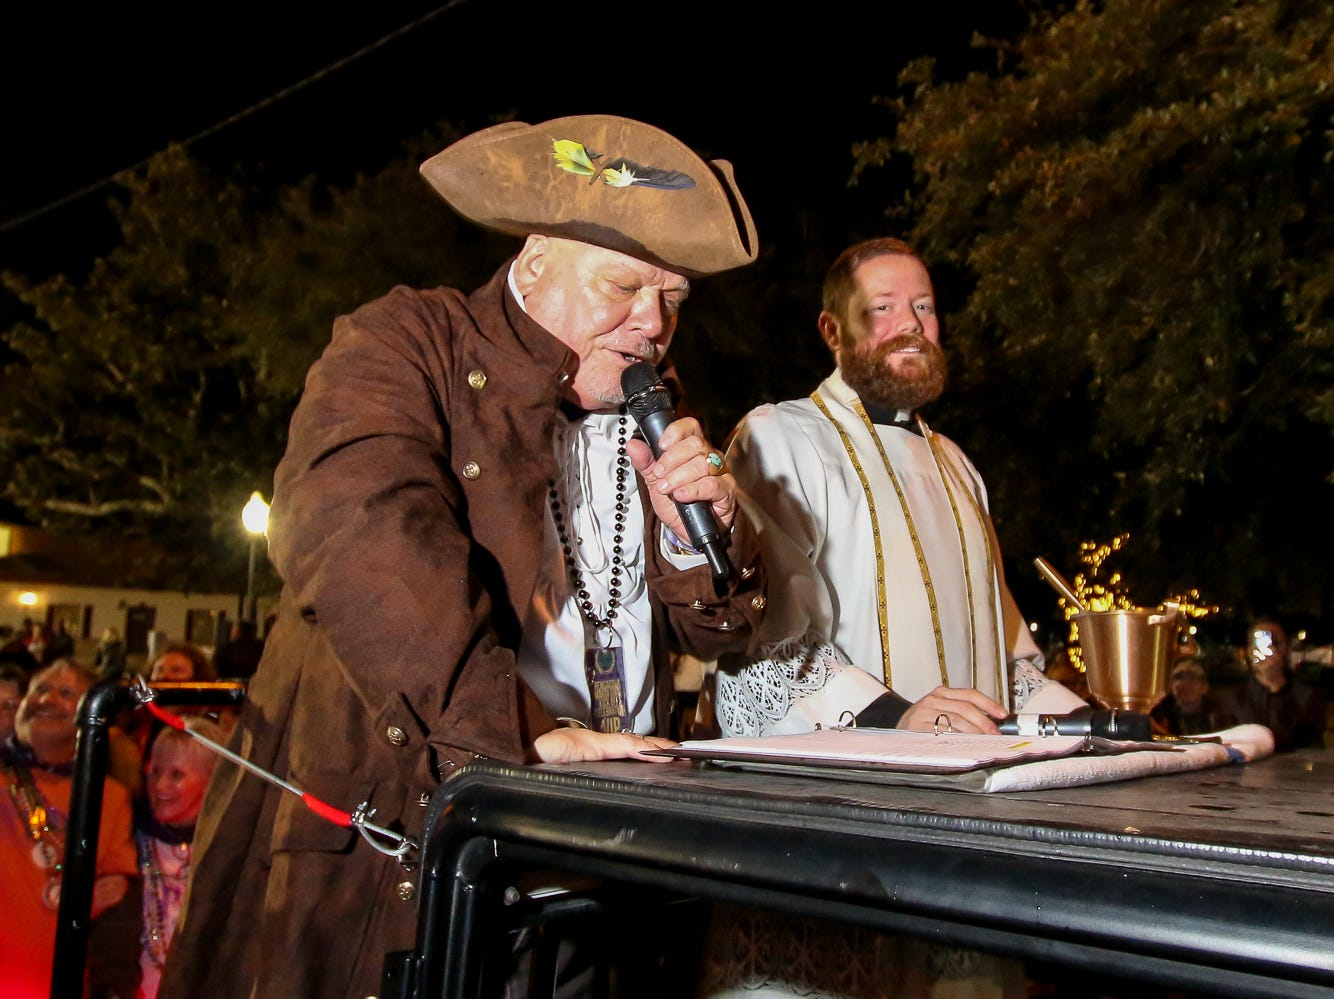 T. Bubba Bechtol, left, announces a krewe before The Reverend Nicholas Schumm blesses the krewe's float during the 2019 Pensacola Mardi Gras season kickoff celebration in downtown on Saturday, January 5, 2019.